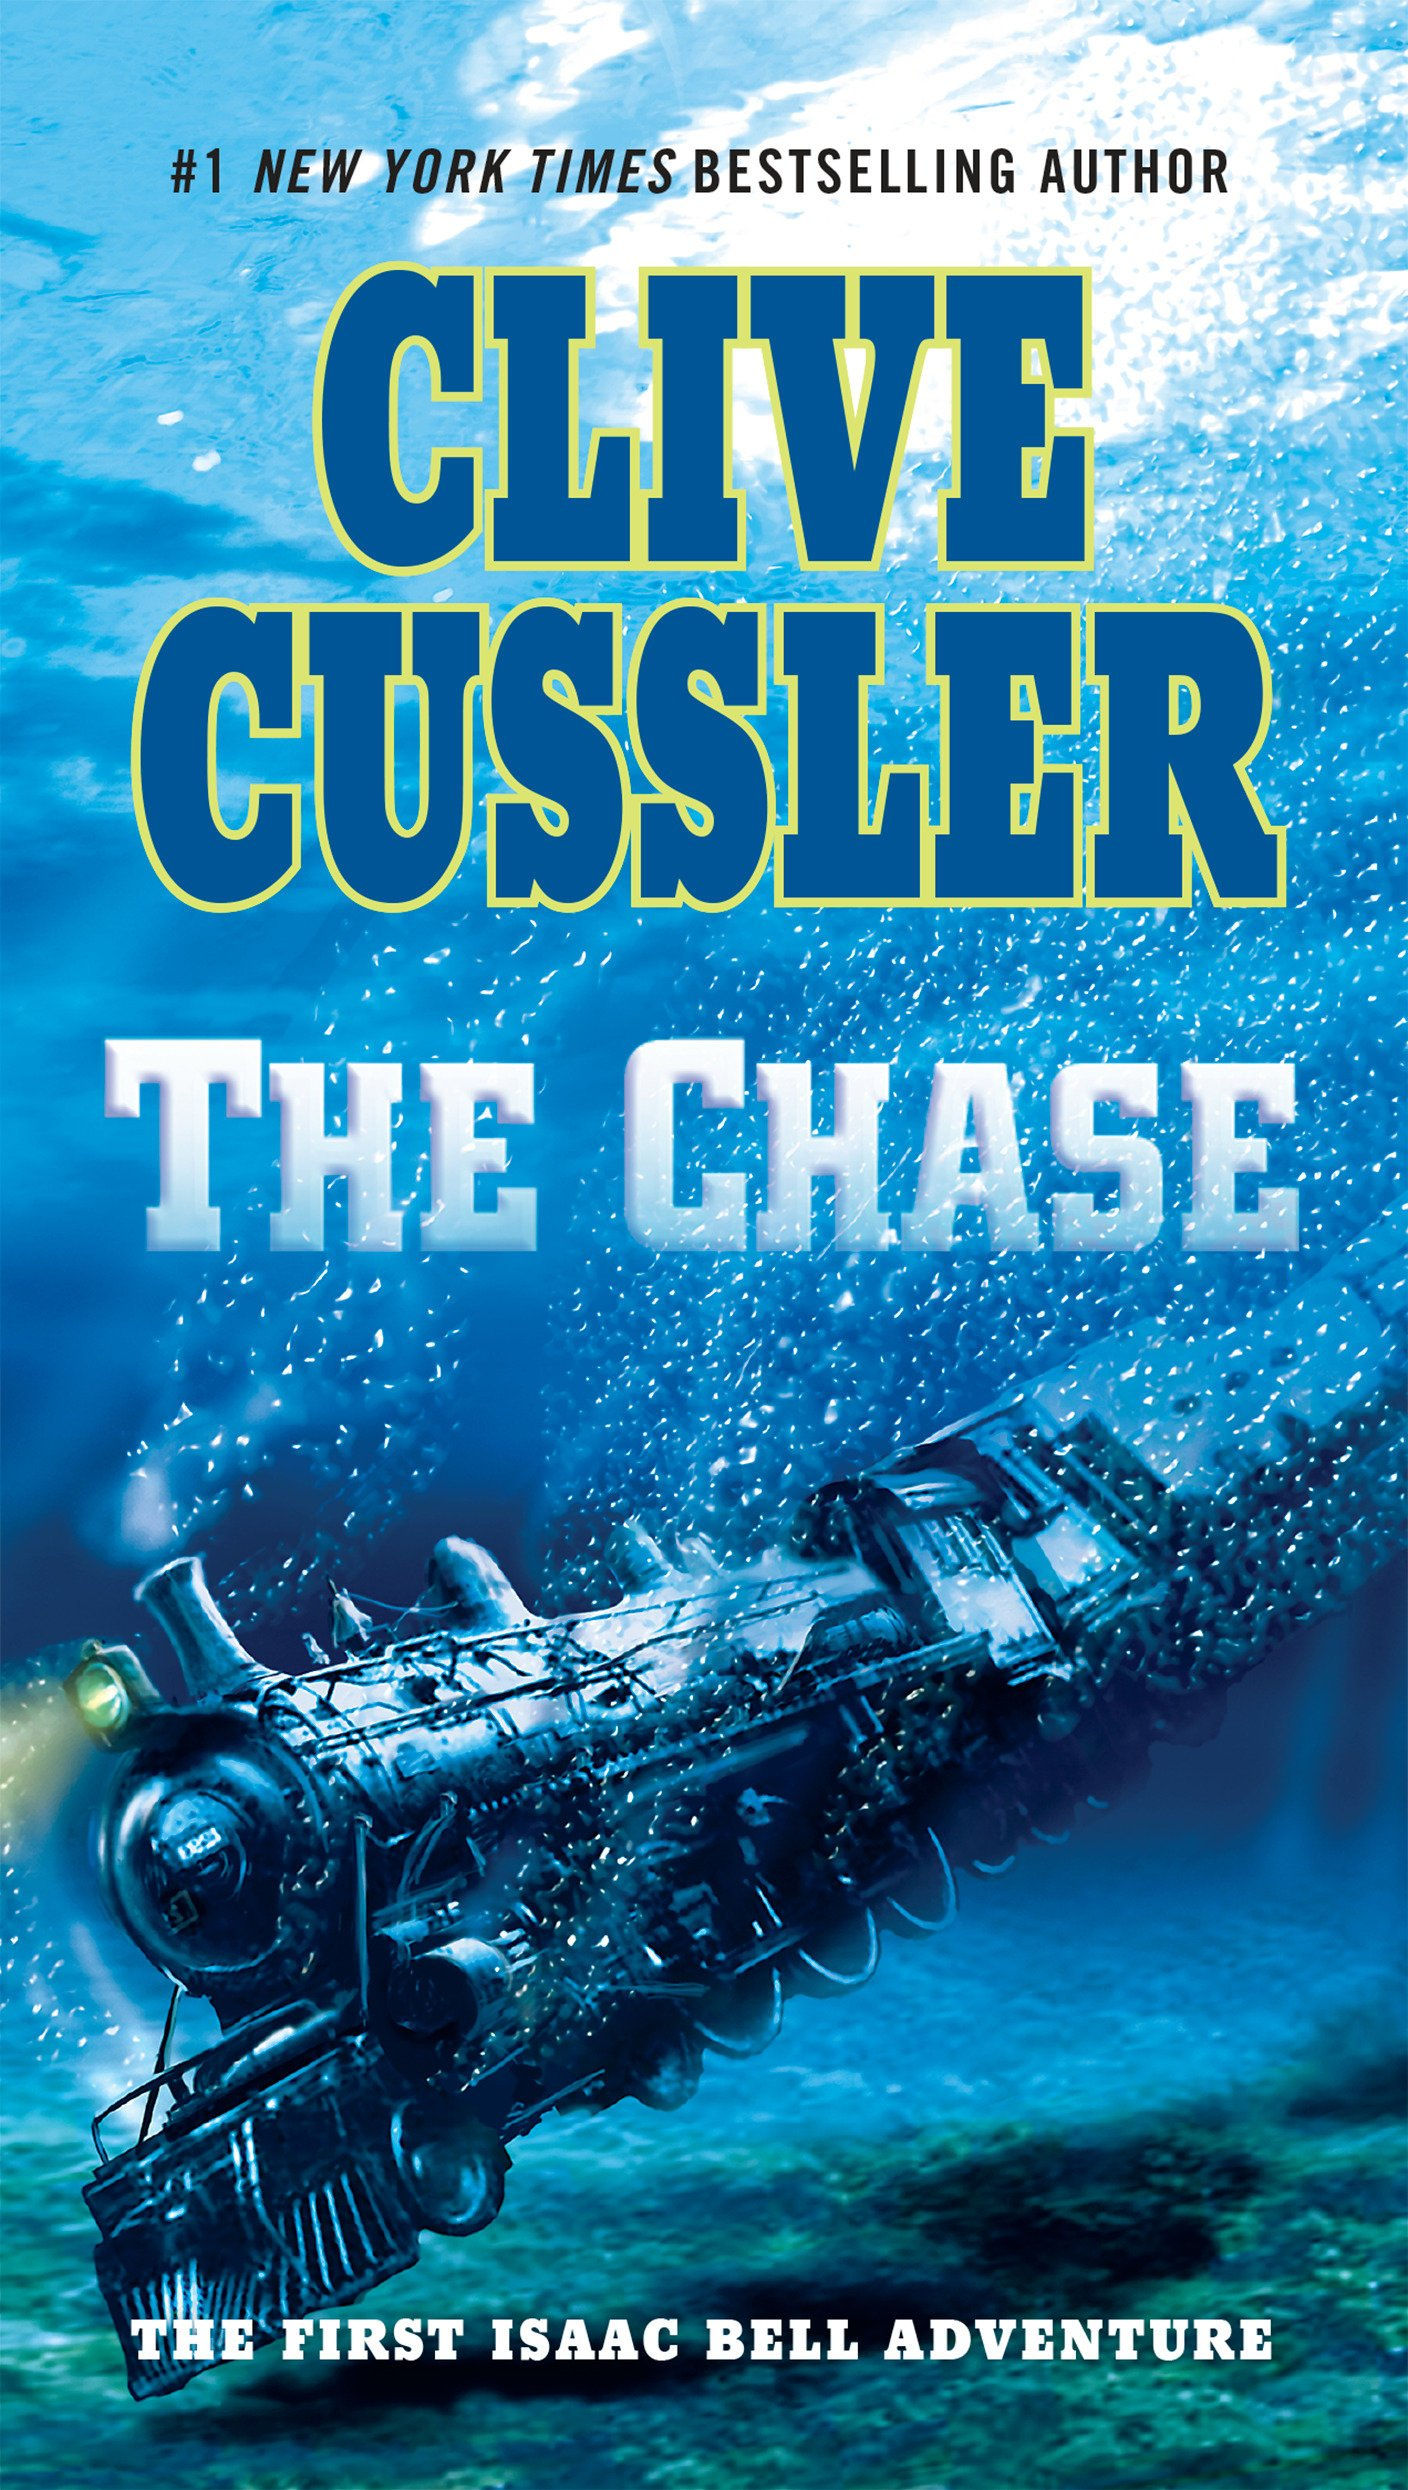 Amazon.com: The Chase (An Isaac Bell Adventure) (9780425224427): Clive  Cussler: Books